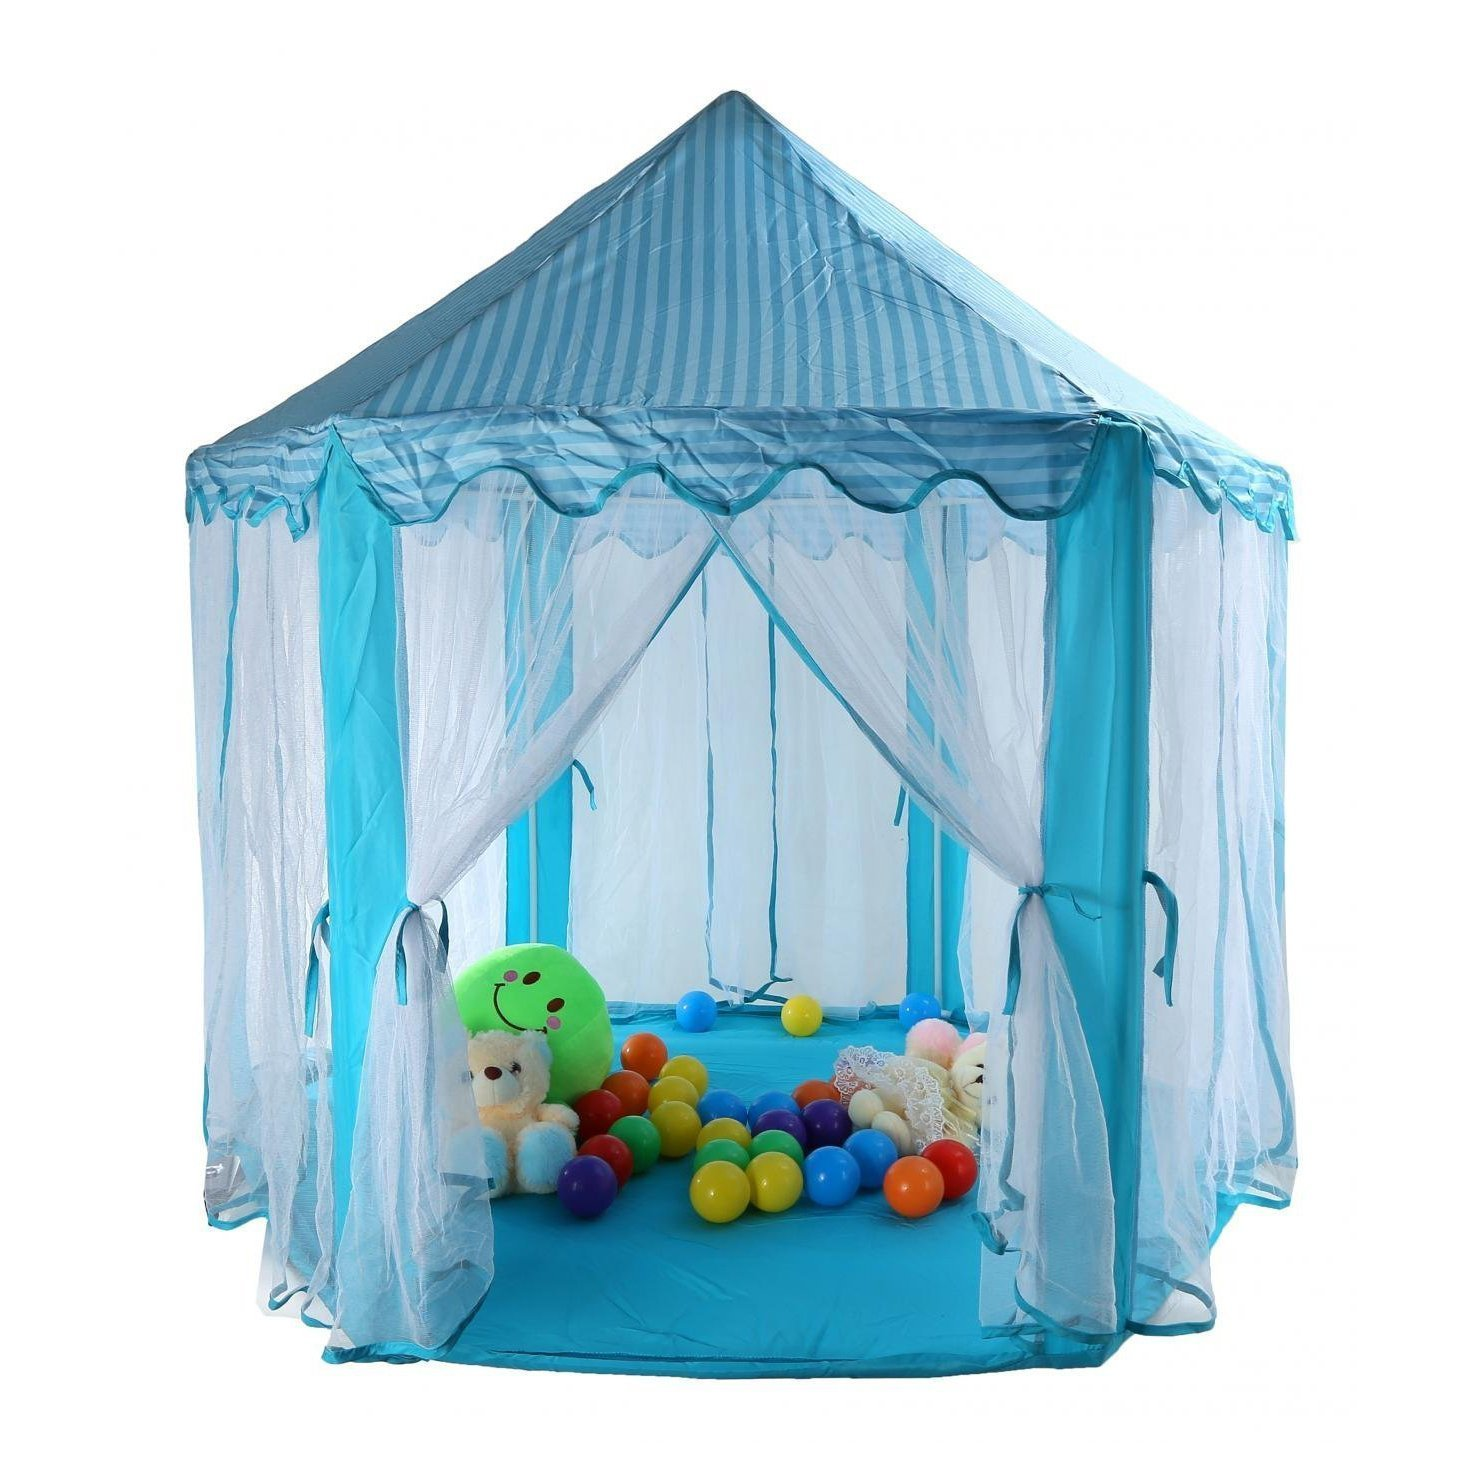 outdoor indoor princess castle play tents garden large playhouse kids baby room ebay. Black Bedroom Furniture Sets. Home Design Ideas